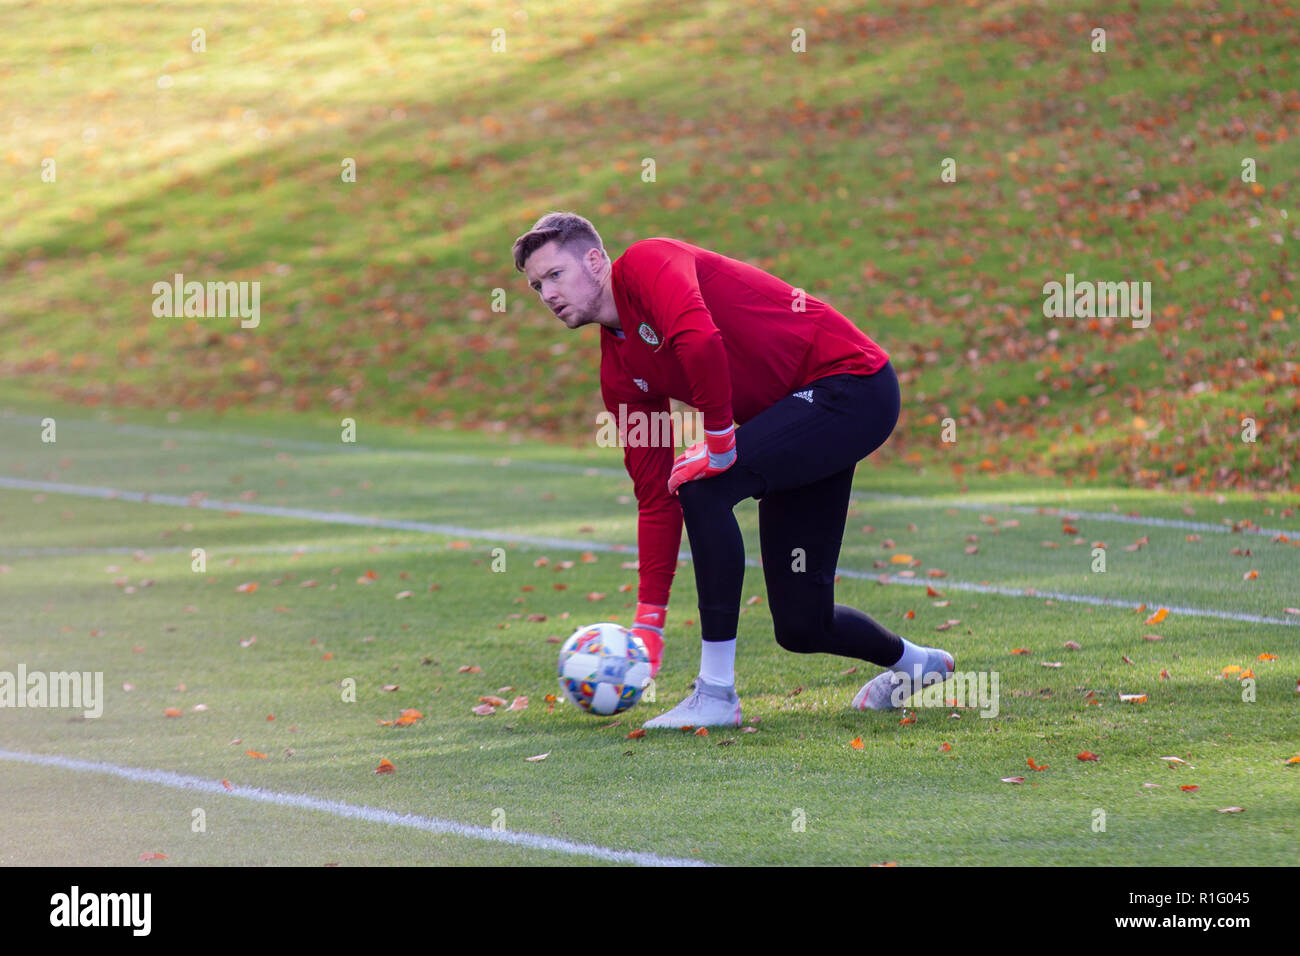 Cardiff, Wales, UK. 12th November, 2018. Wales goalkeeper Wayne Hennessey trains at the Vale Resort ahead of their upcoming international matches against Denmark & Albania.  Lewis Mitchell/YCPD. Credit: Lewis Mitchell/Alamy Live News Stock Photo